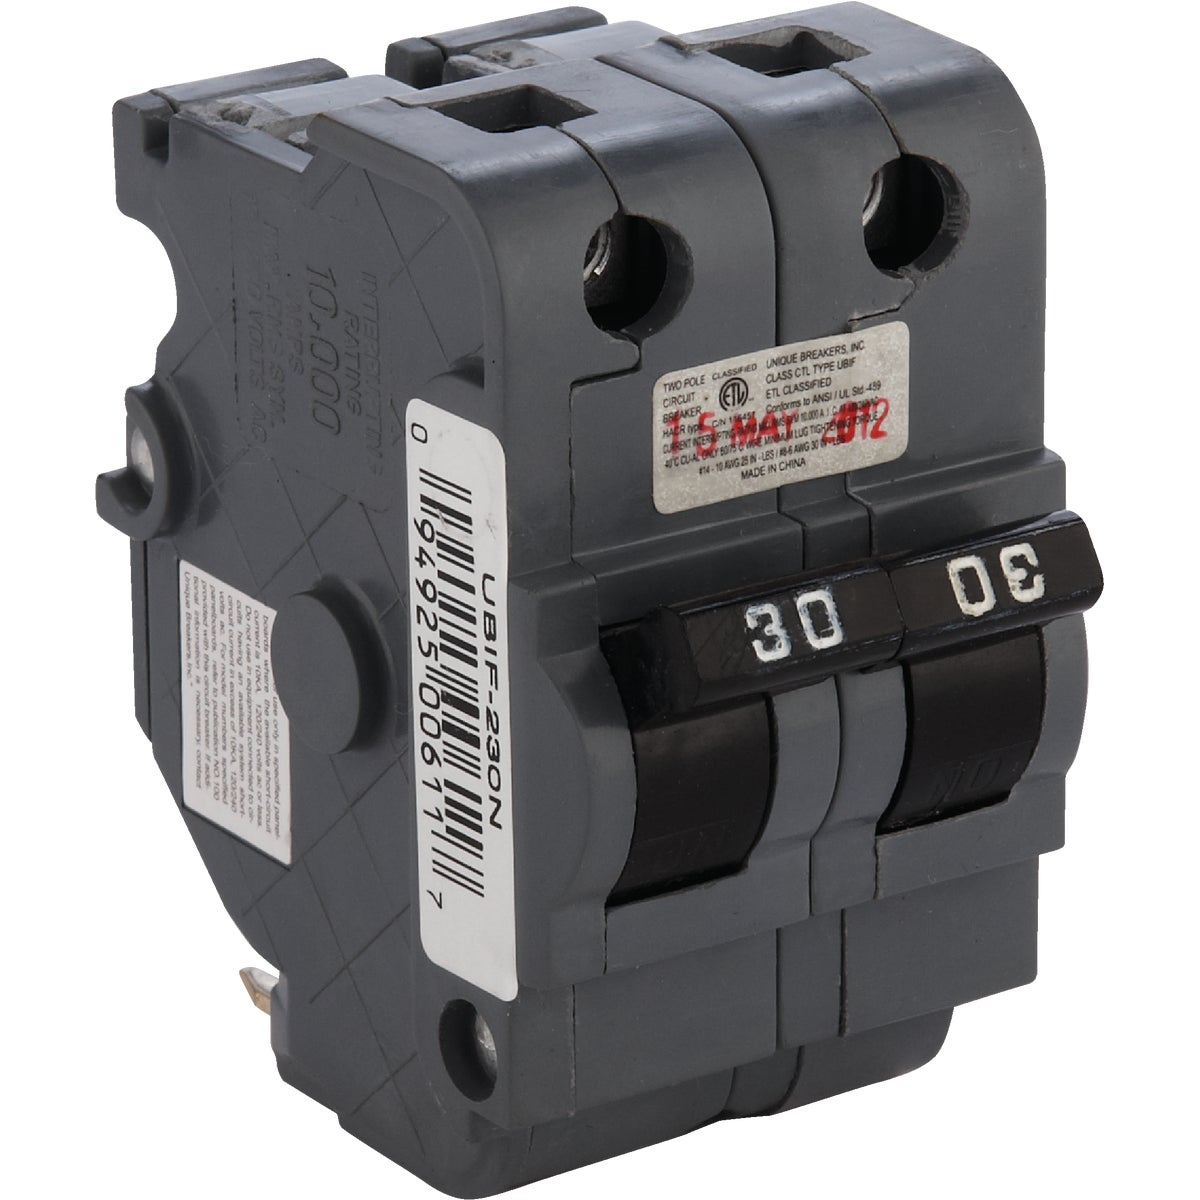 30A 2P CIRCUIT BREAKER - UBIF230N by Connecticut Electric